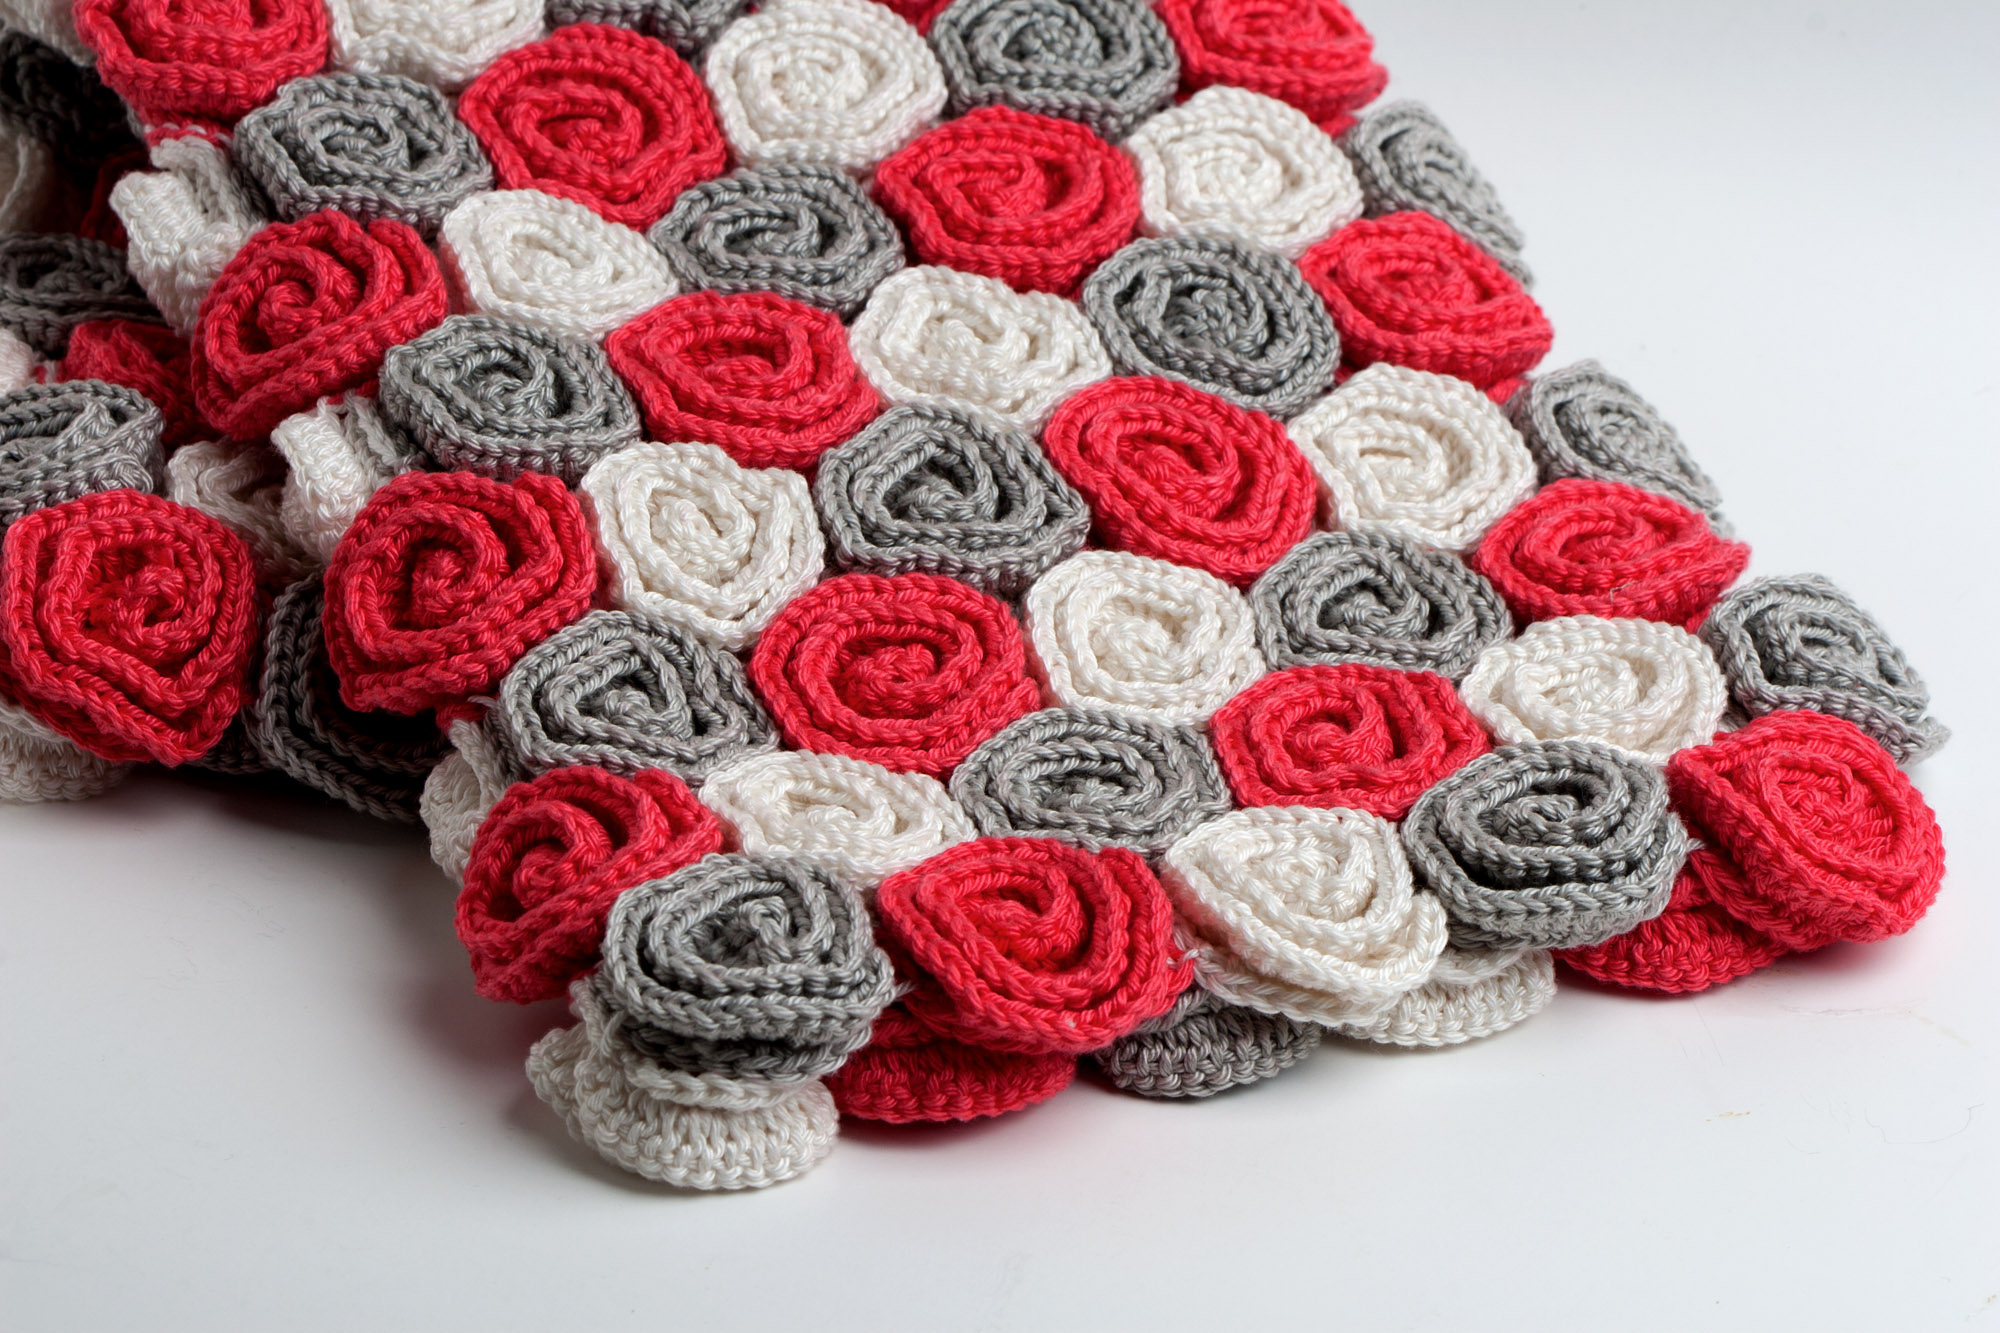 Crochet Pattern Rose Field - Yarn Twist